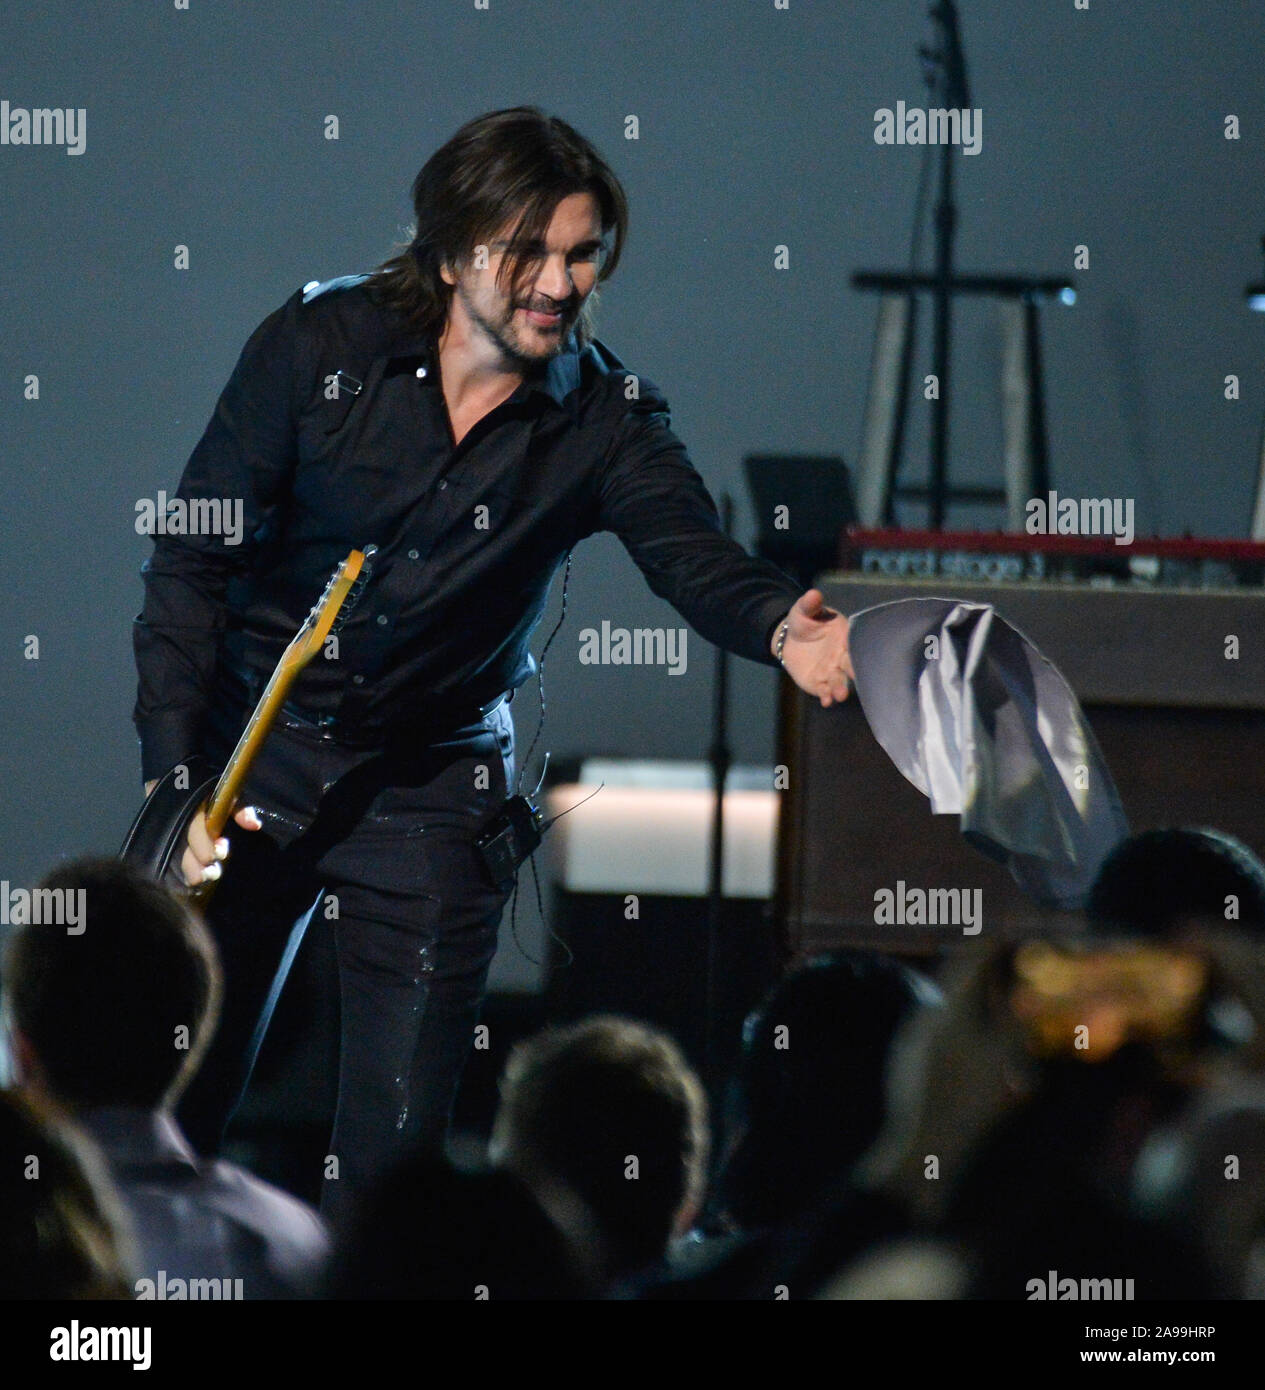 Las Vegas, United States. 13th Nov, 2019. Juanes performs onstage at the Latin Grammy Person of the Year gala honoring Columbian singer Juanes at the MGM Grand Convention Center in Las Vegas, Nevada on Wednesday, November 13, 2019. Photo by Jim Ruymen/UPI Credit: UPI/Alamy Live News Stock Photo